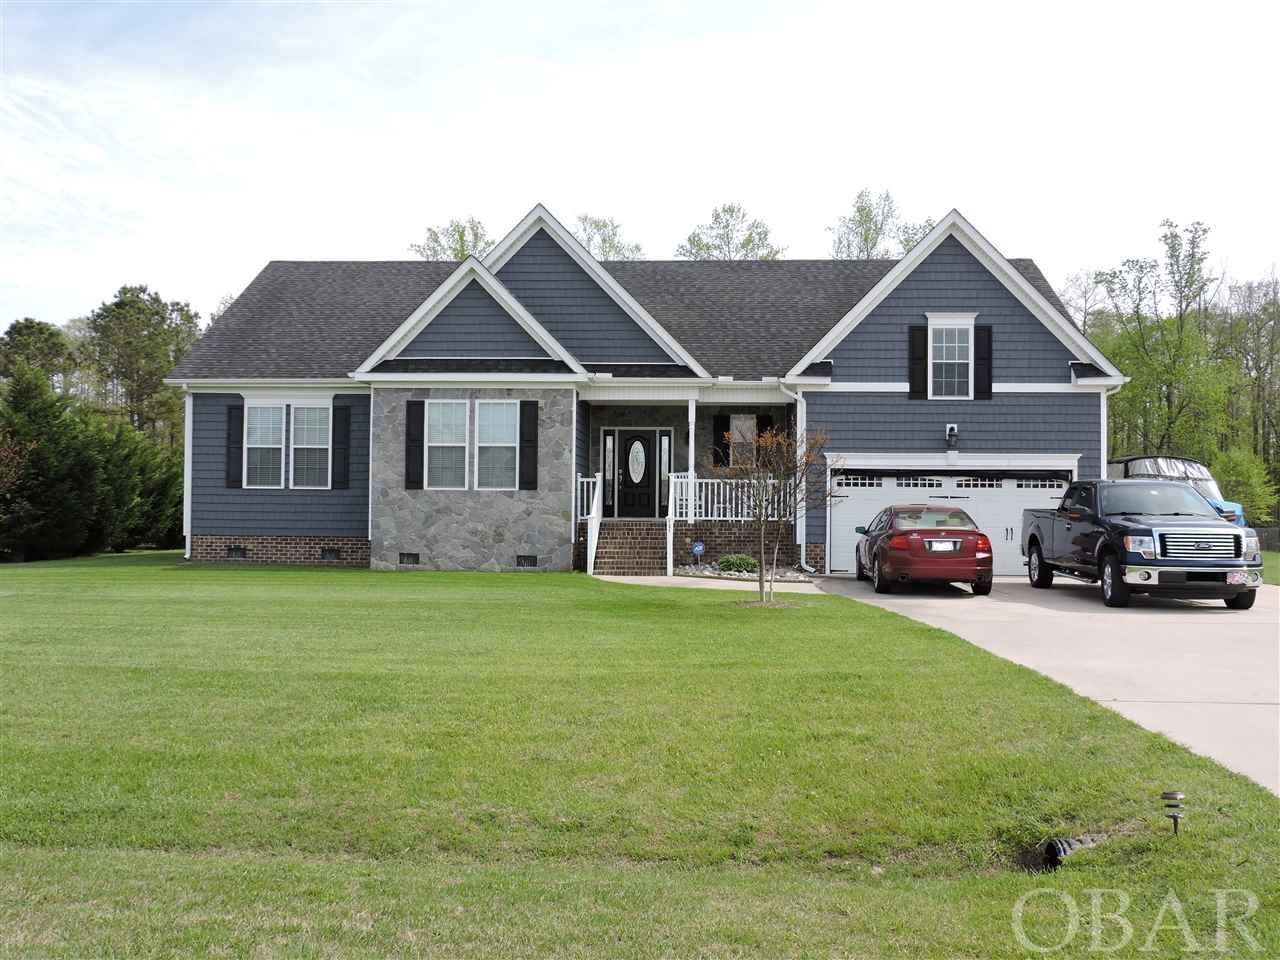 131 Creekside Drive,Moyock,NC 27958,4 Bedrooms Bedrooms,3 BathroomsBathrooms,Residential,Creekside Drive,100195